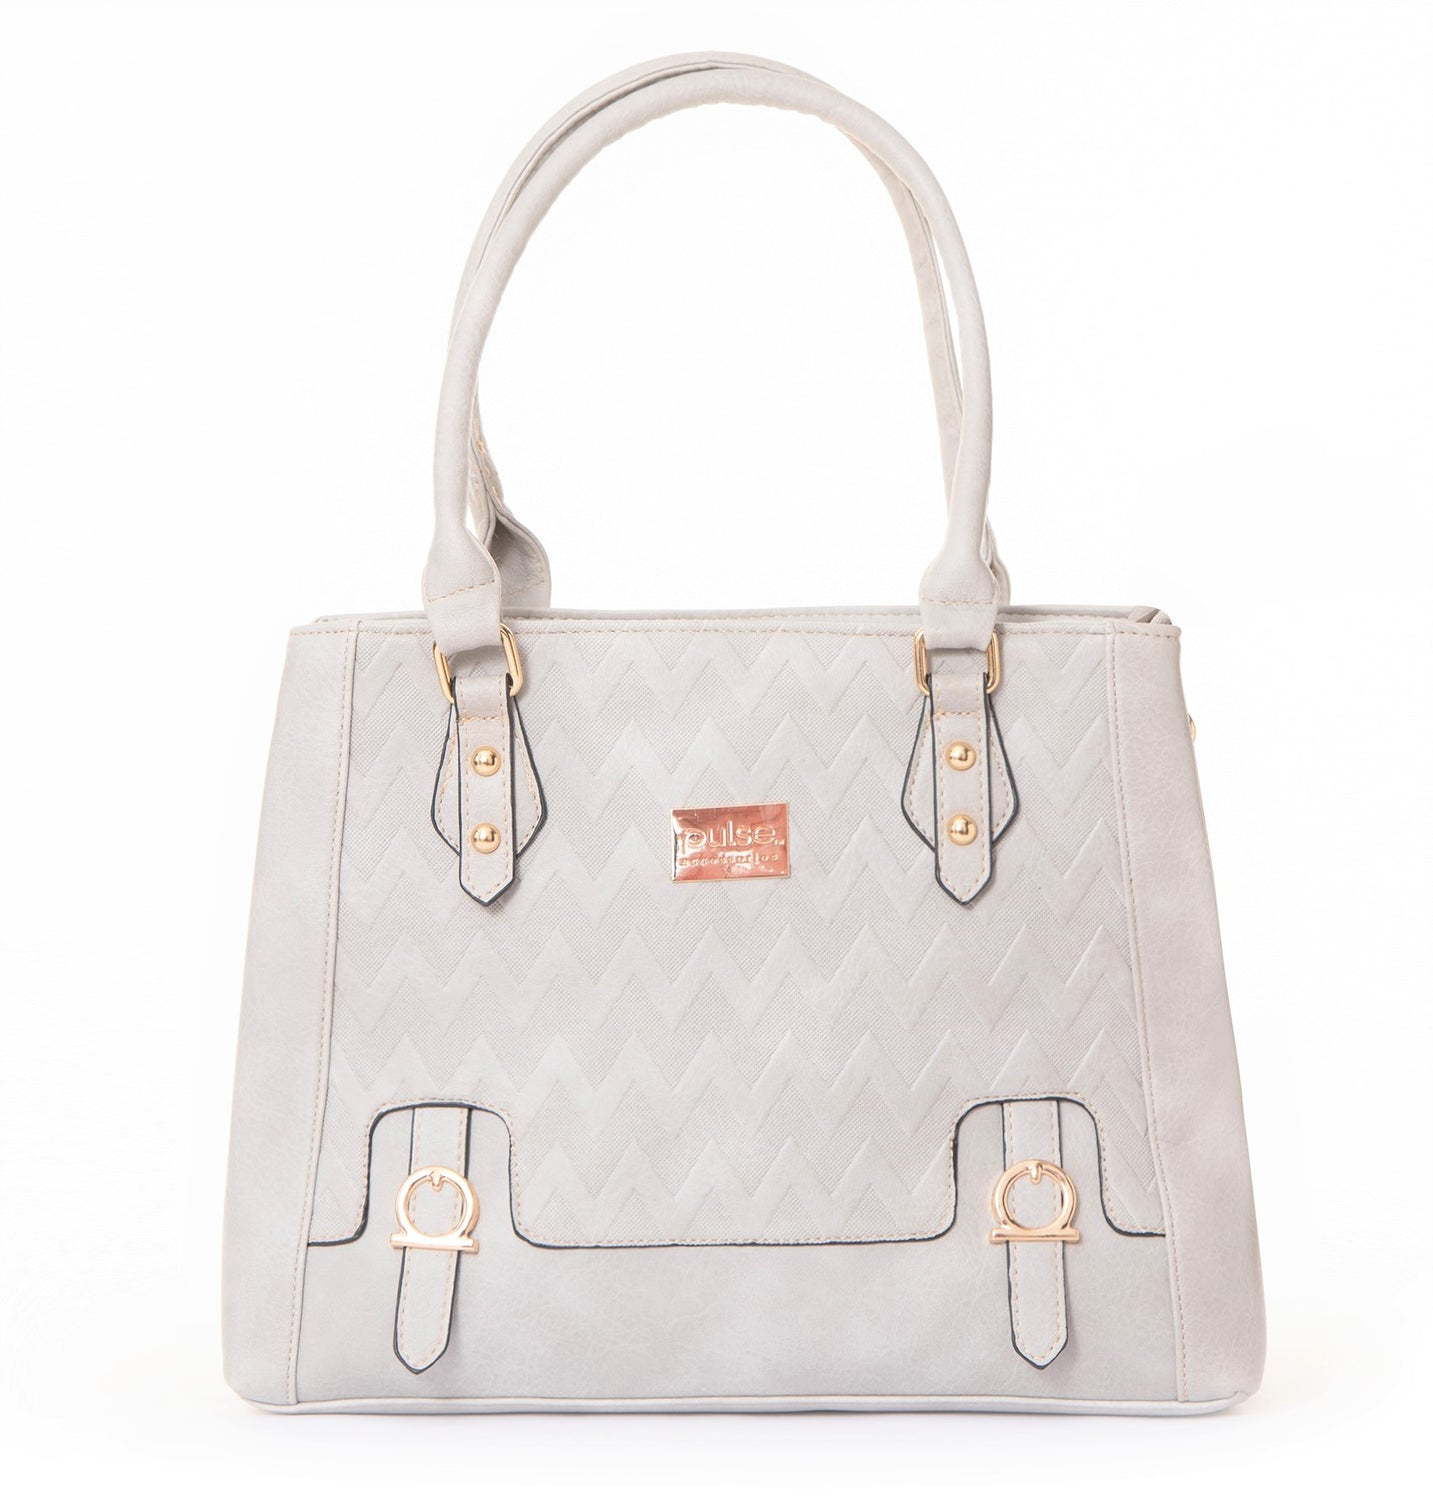 Pulse Accessories Handbag Grey